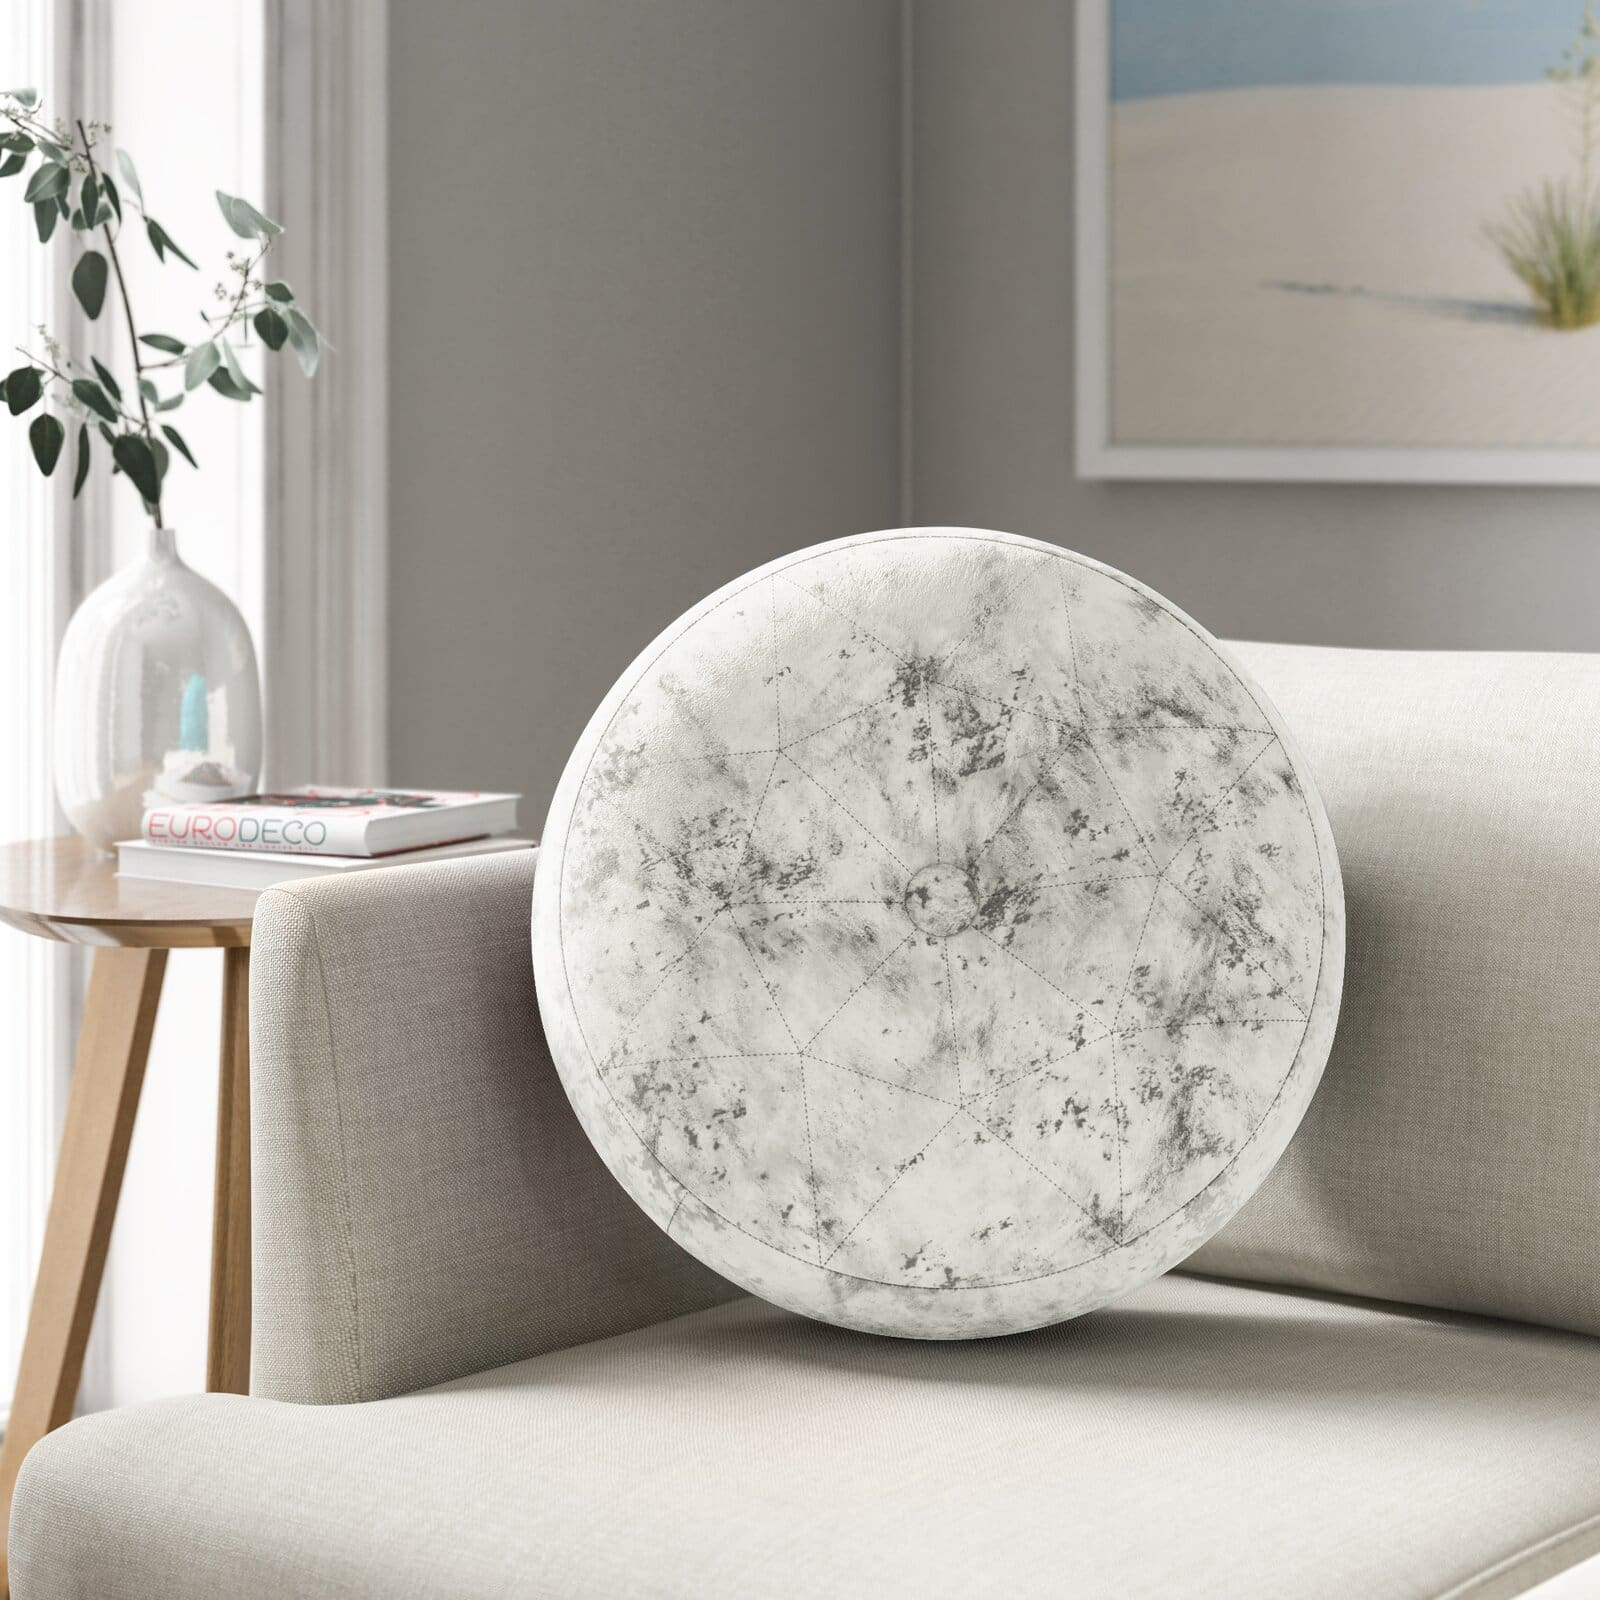 Add Variety With Round Throw Pillows